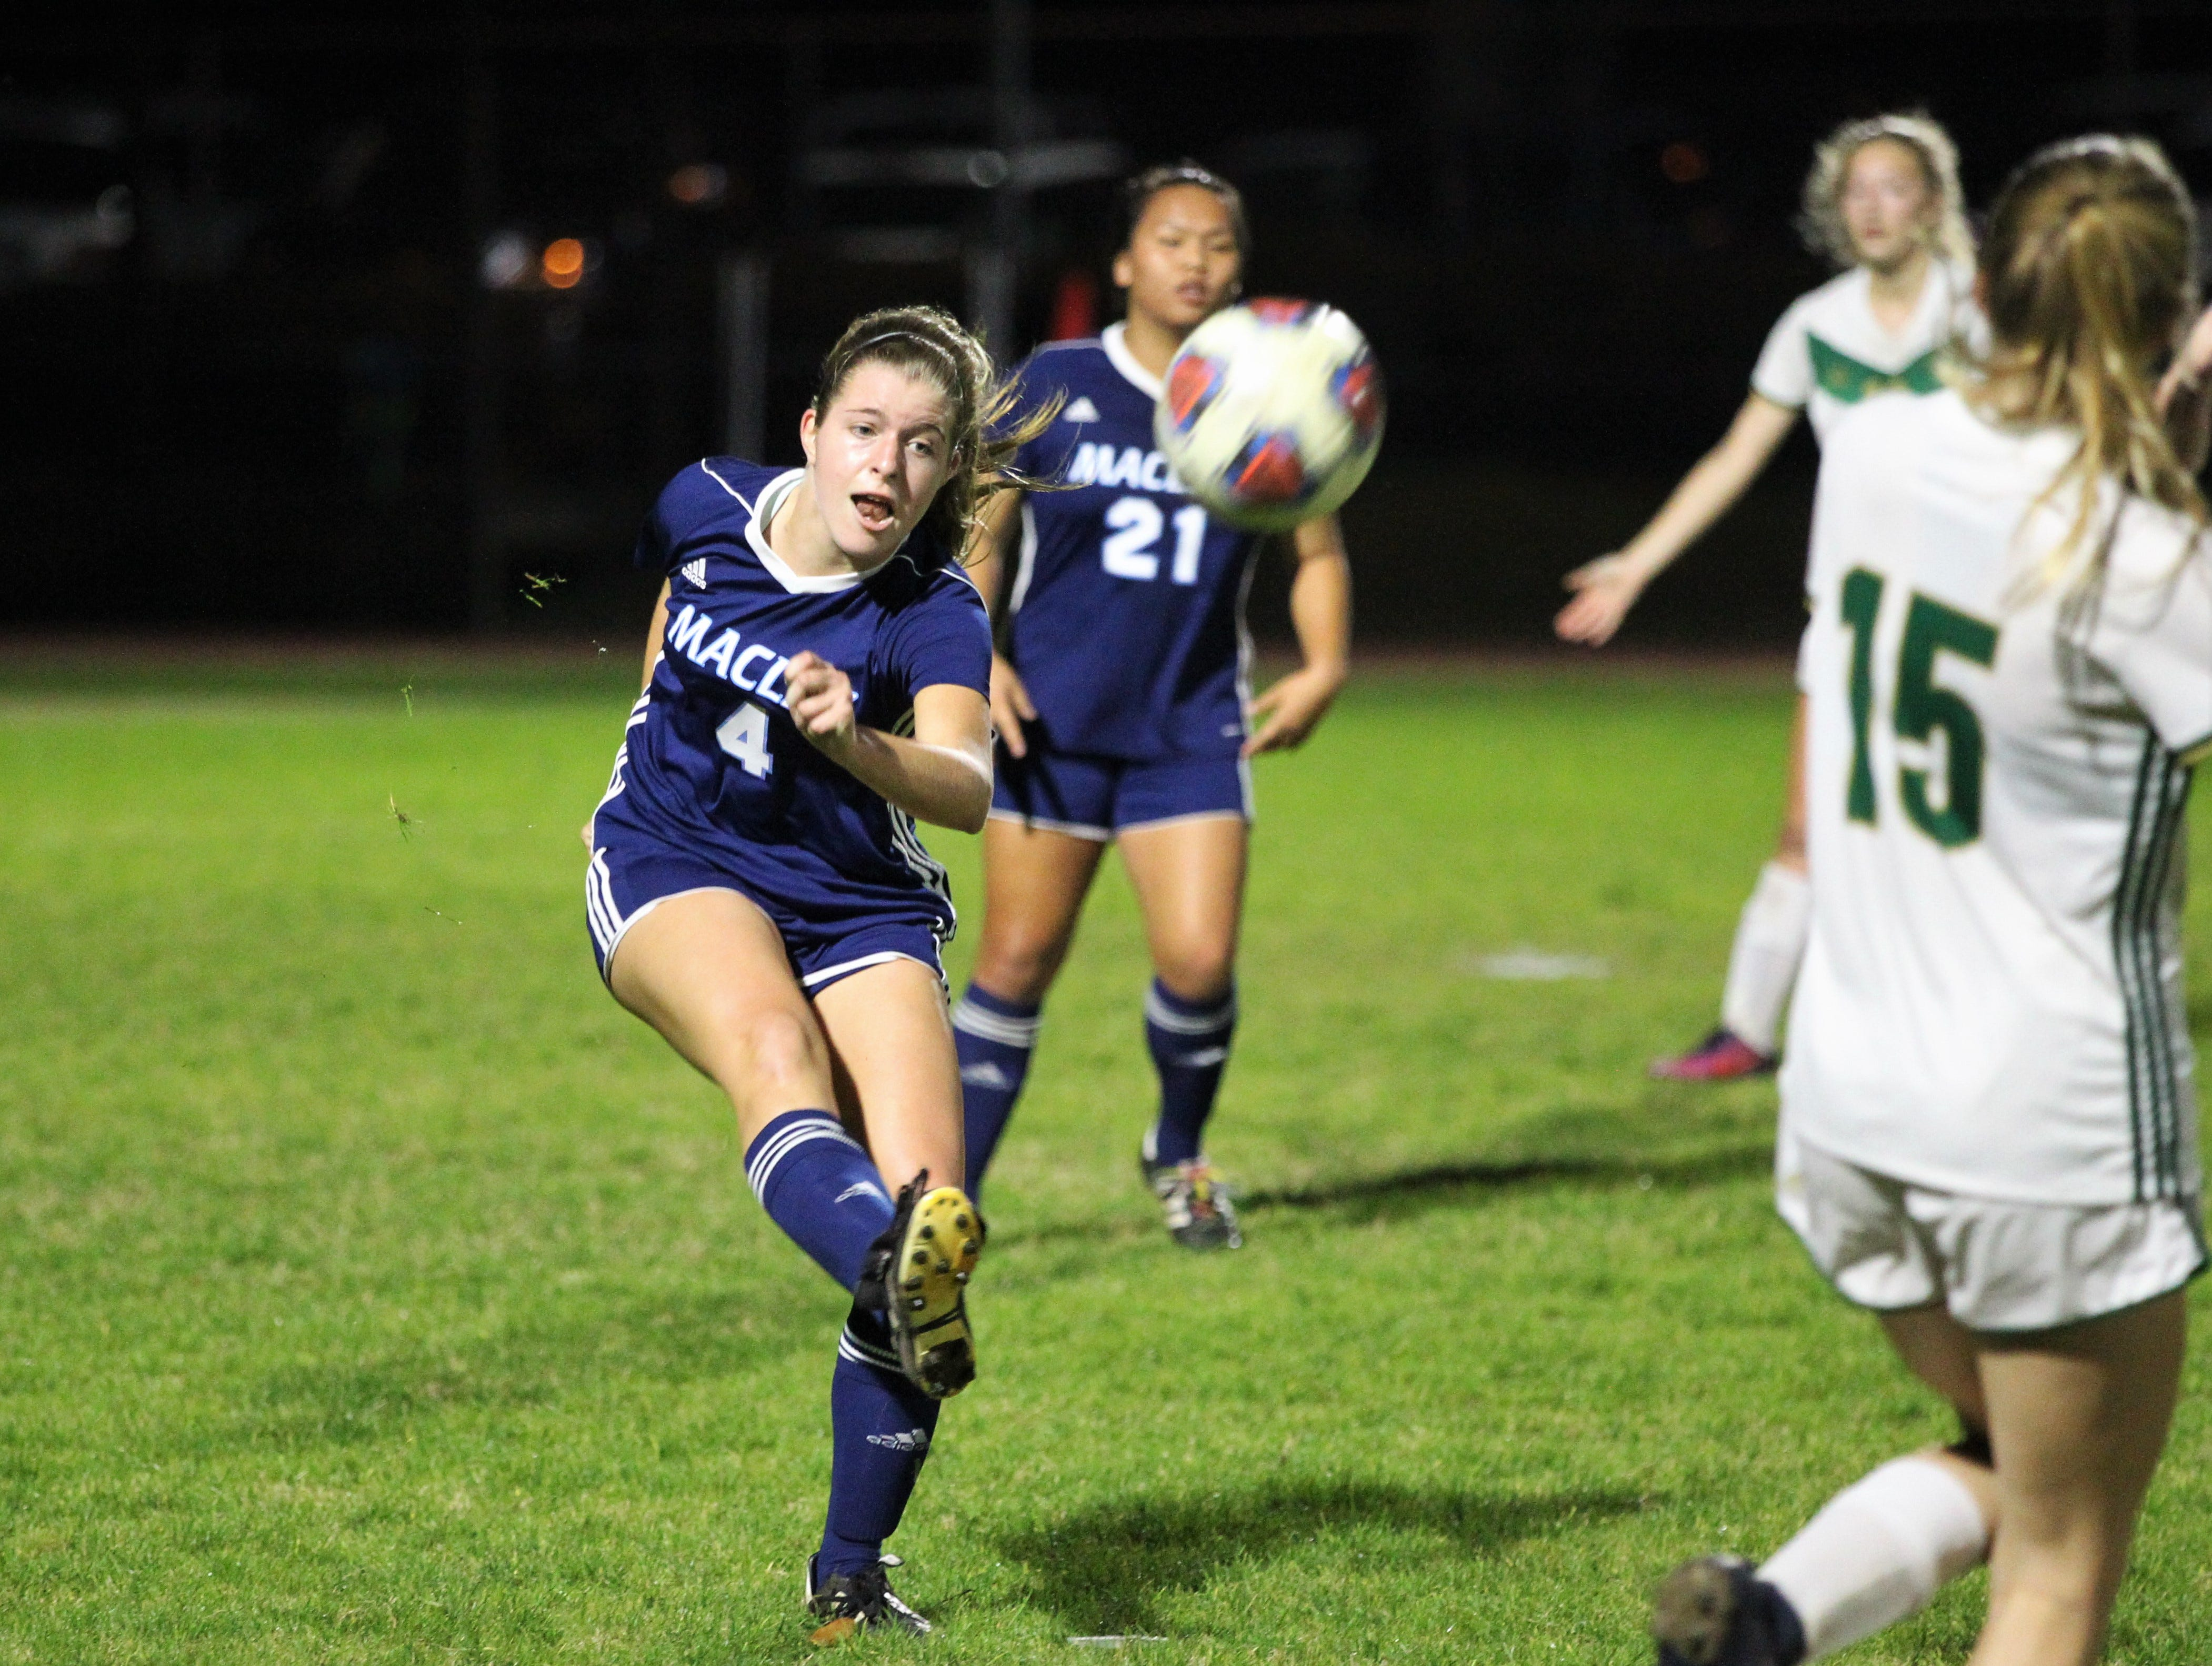 Maclay's Ramsay Grant clears a ball as Maclay's girls soccer team beat St. Joseph Academy 4-0 in a Region 1-1A quarterfinal on Jan. 5, 2019.